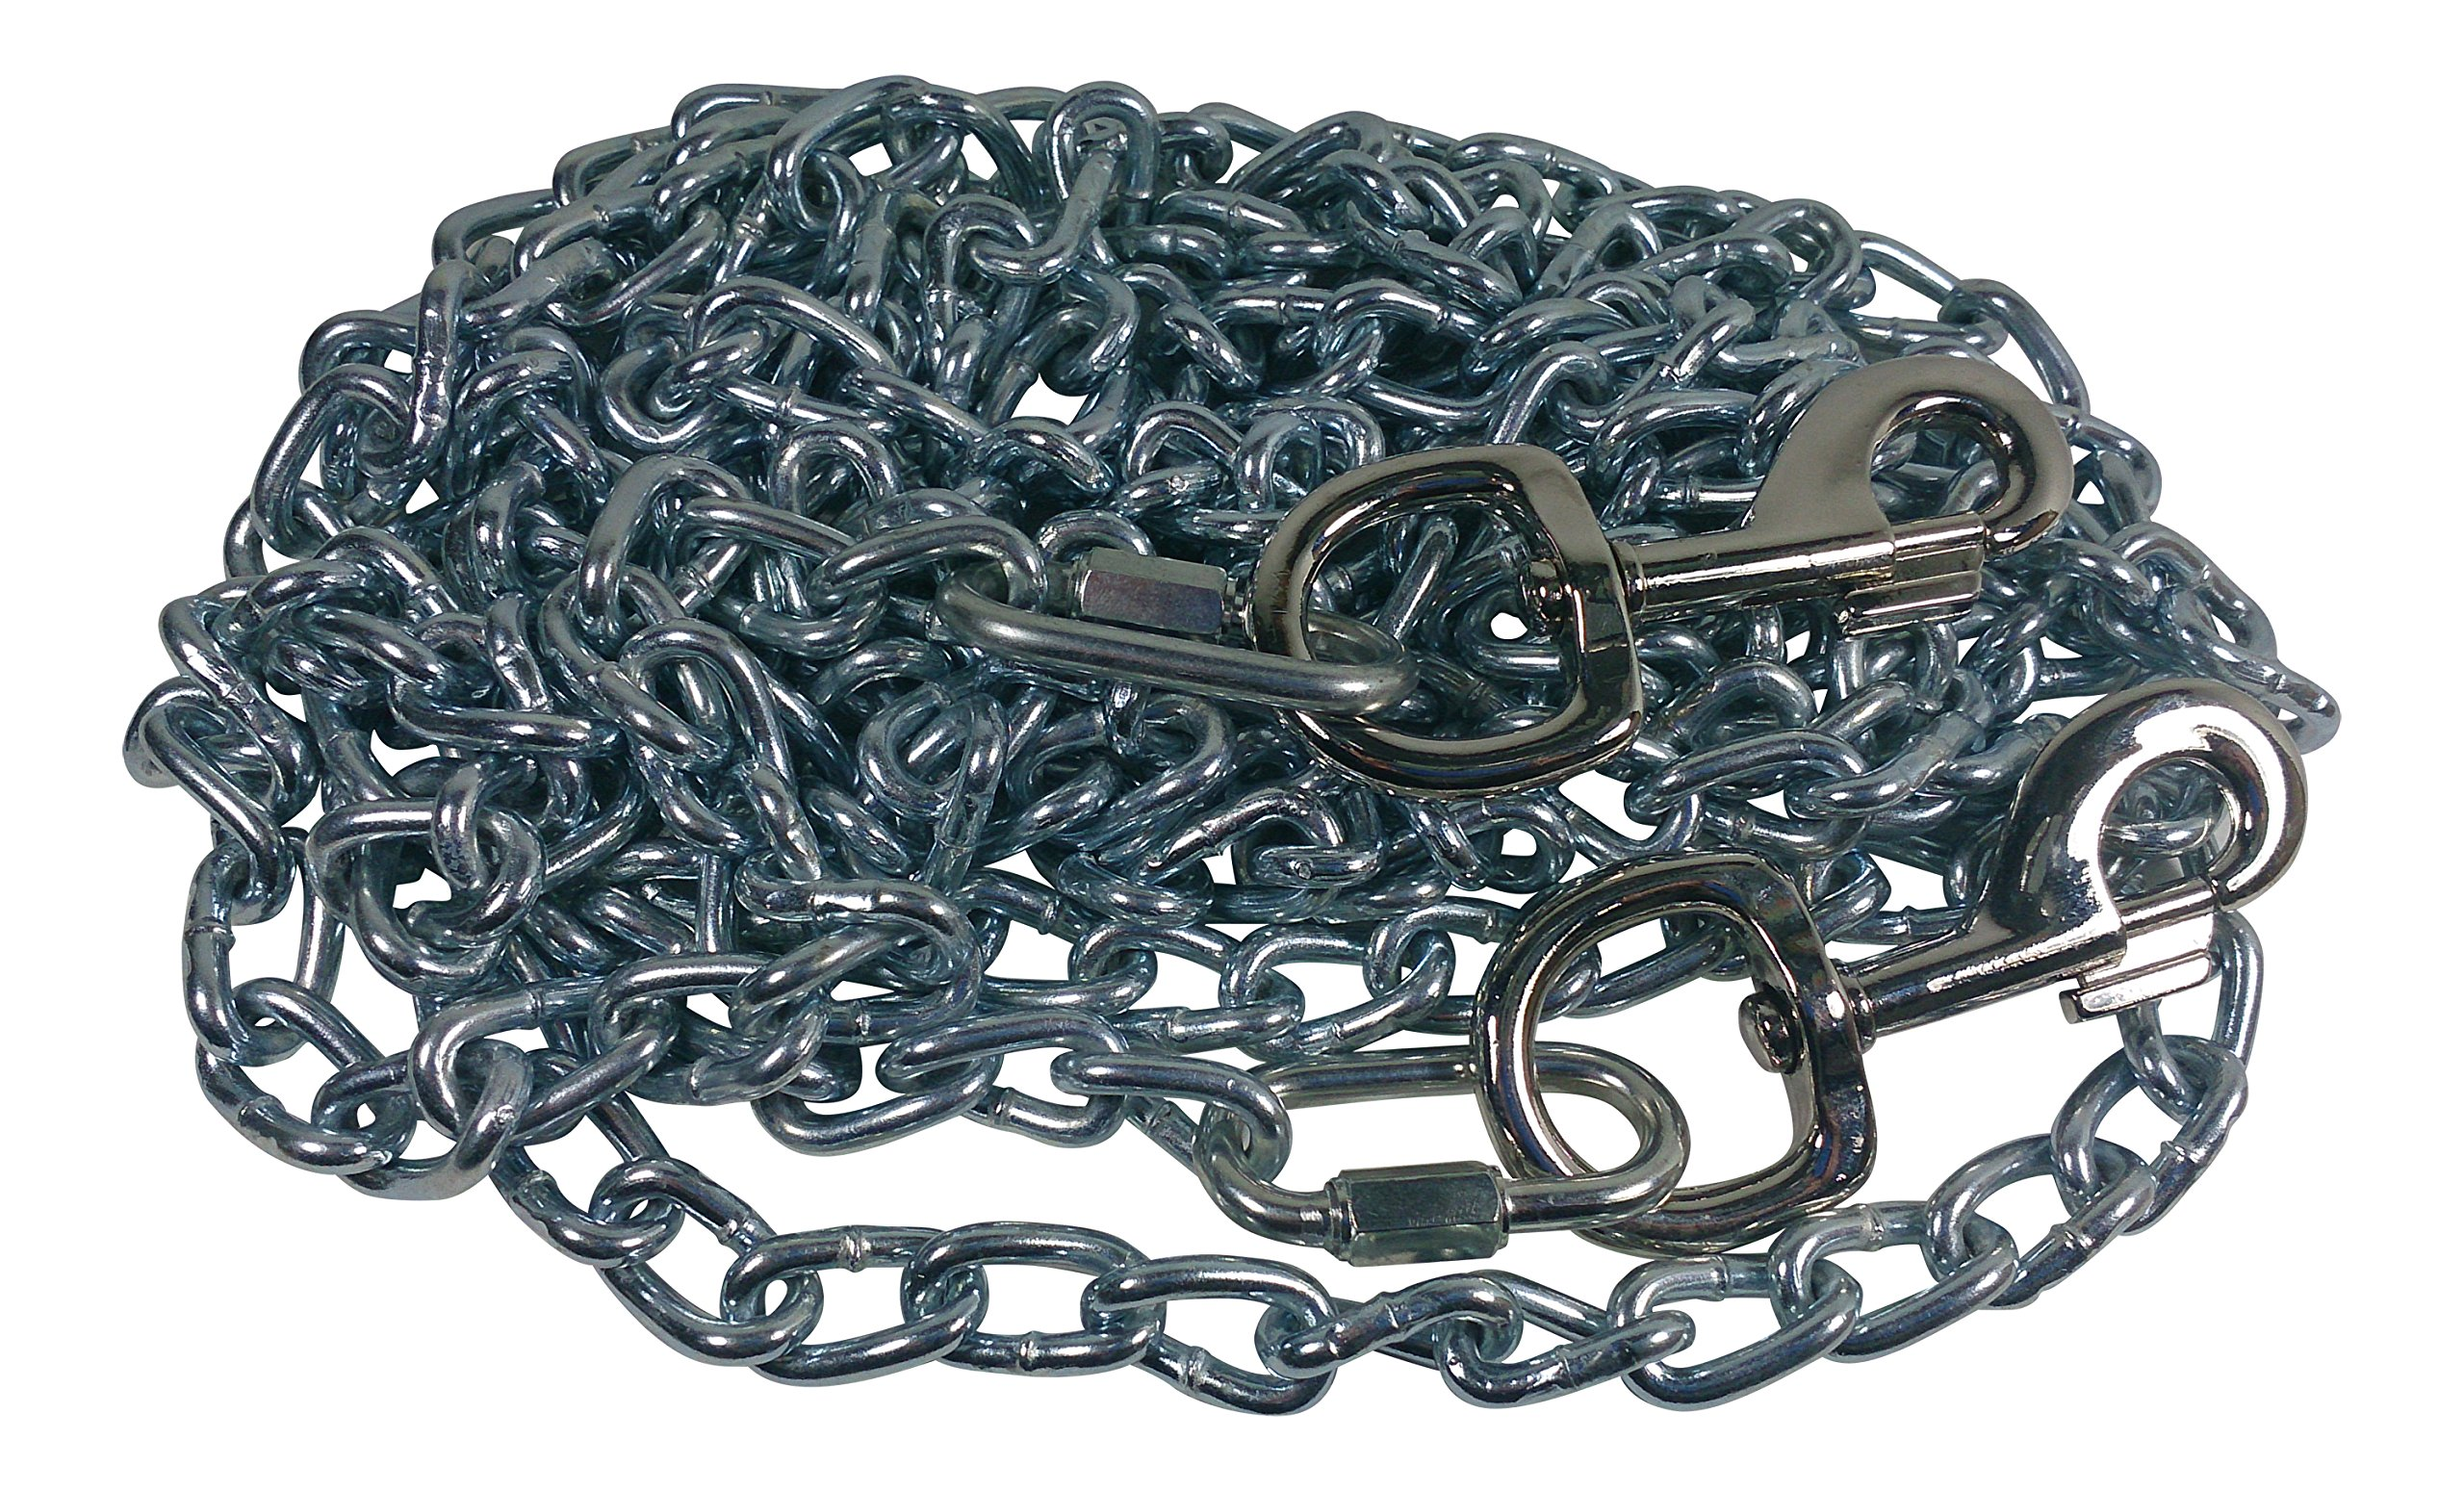 Beast-Master Twist Link Tie-Out Chain Heavy Duty Big Dogs (100 FT)